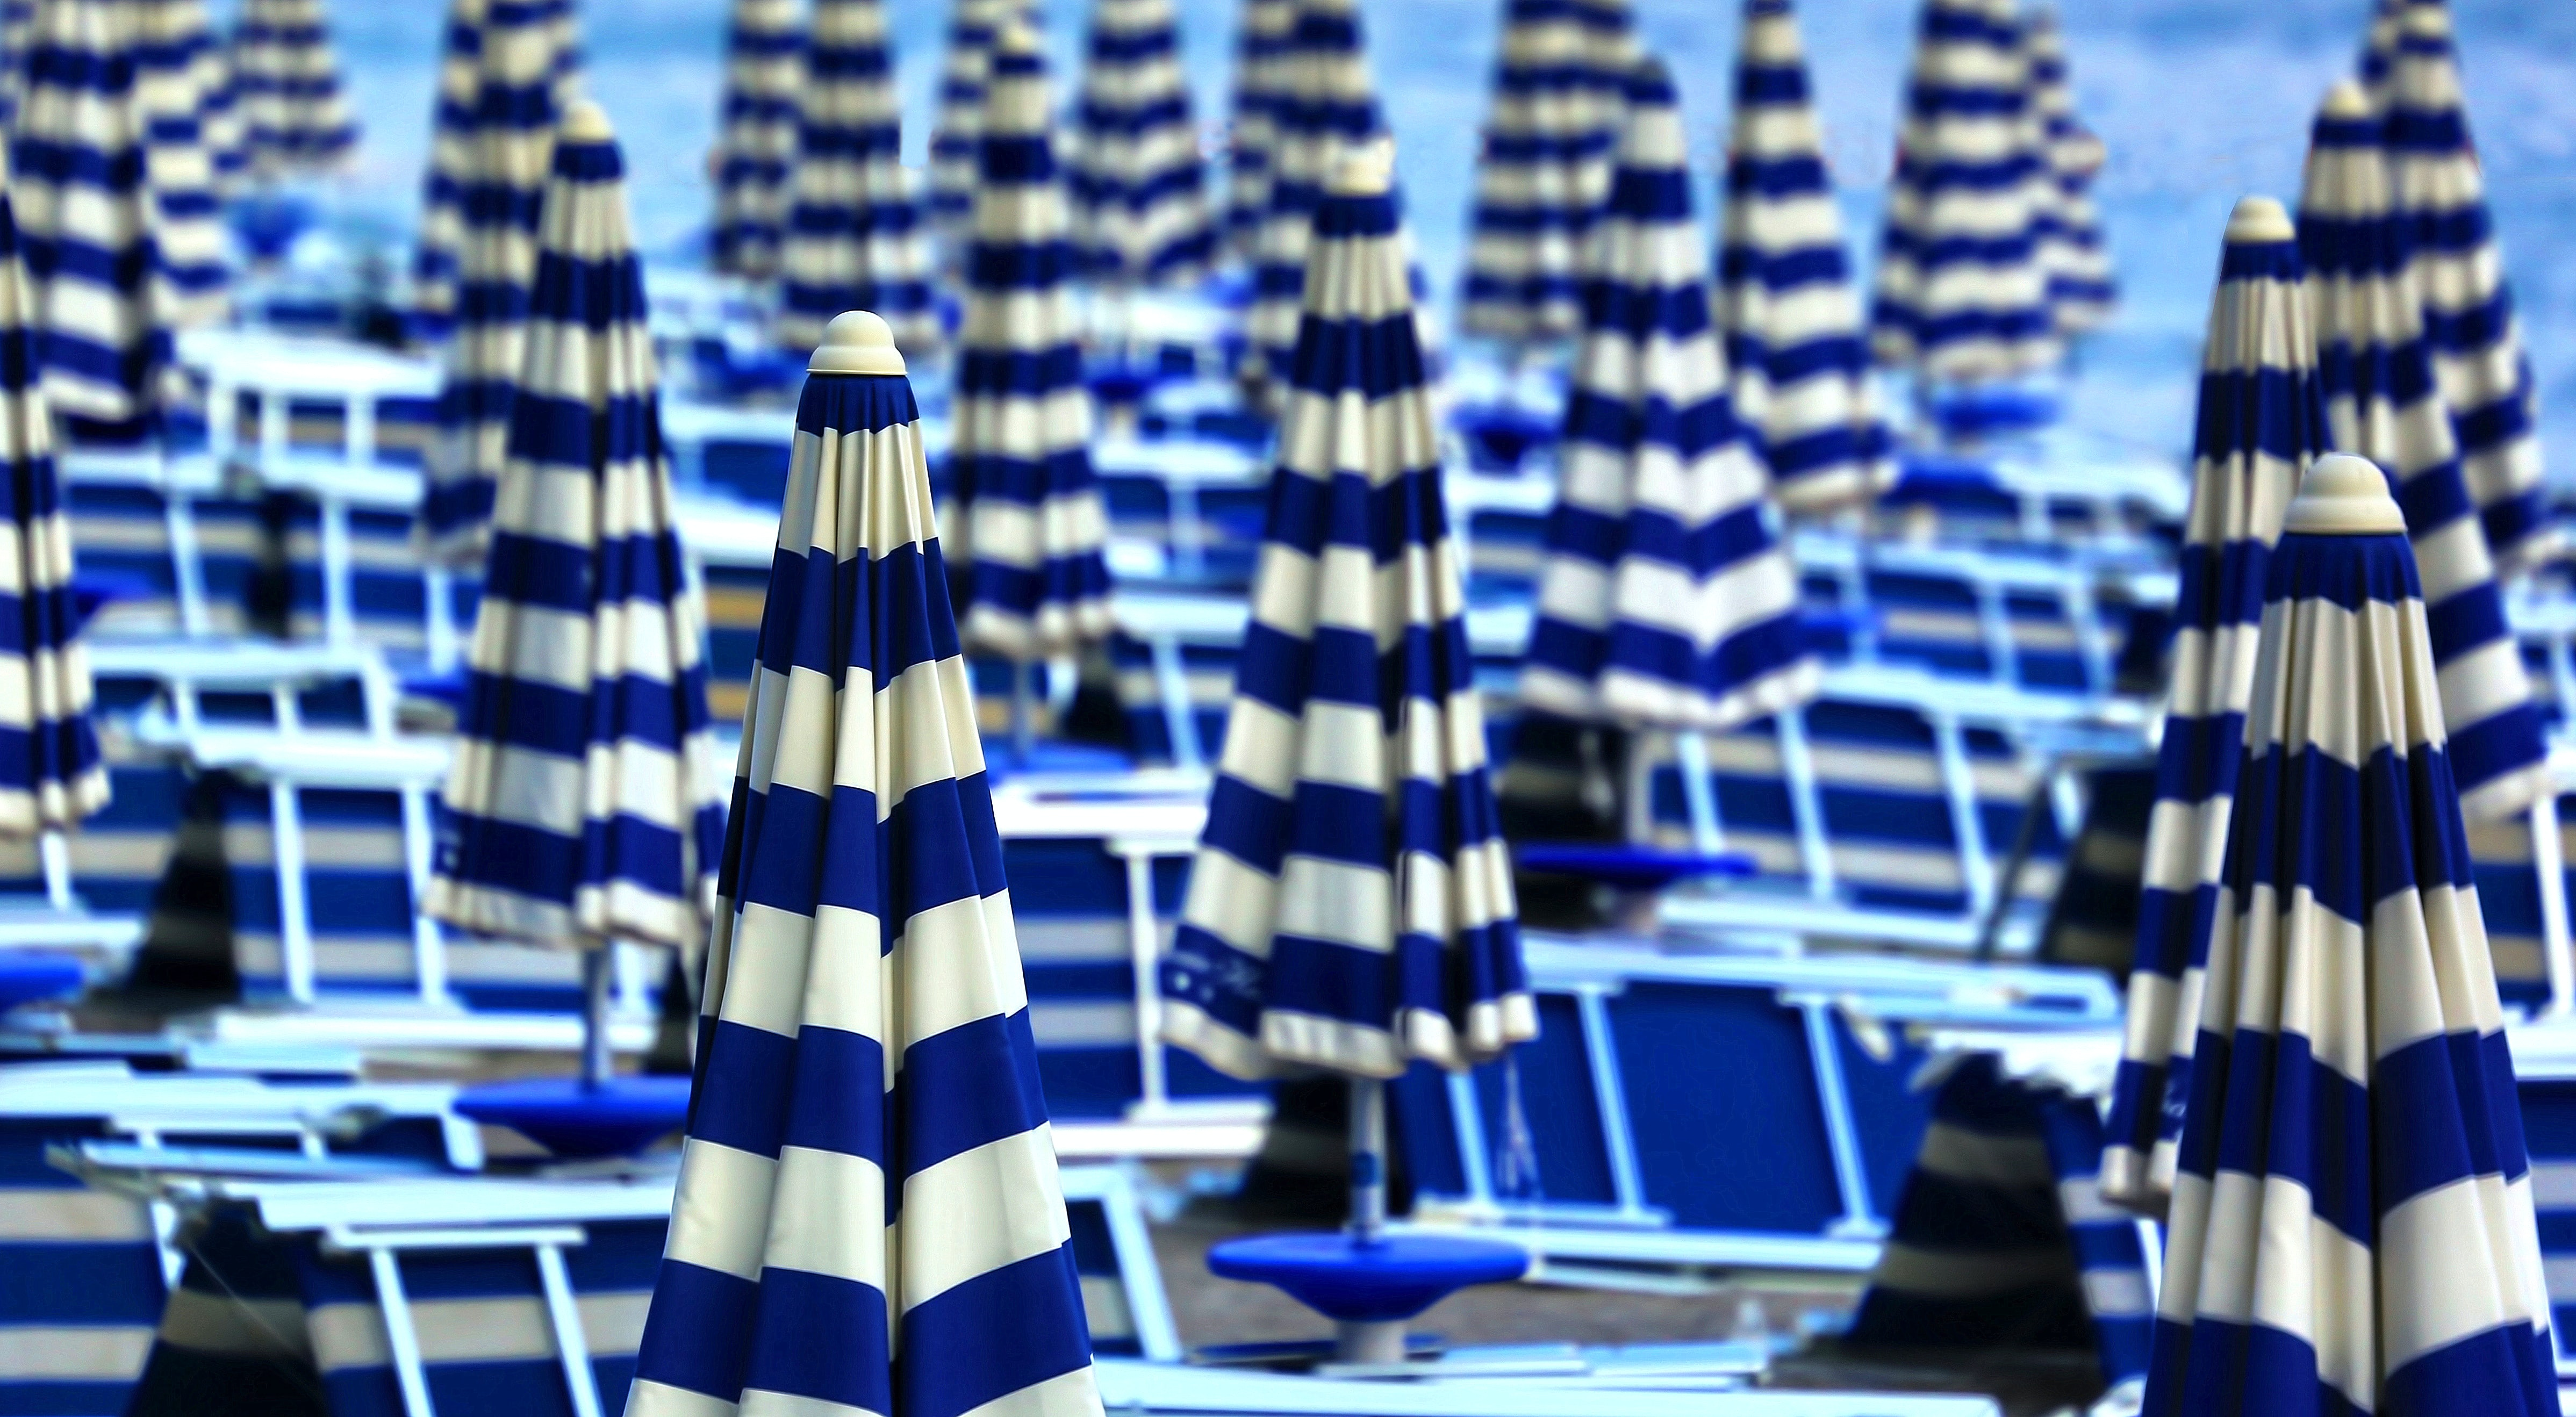 A beach with blue and white picnic tables and umbrellas in Sapore di' Mare